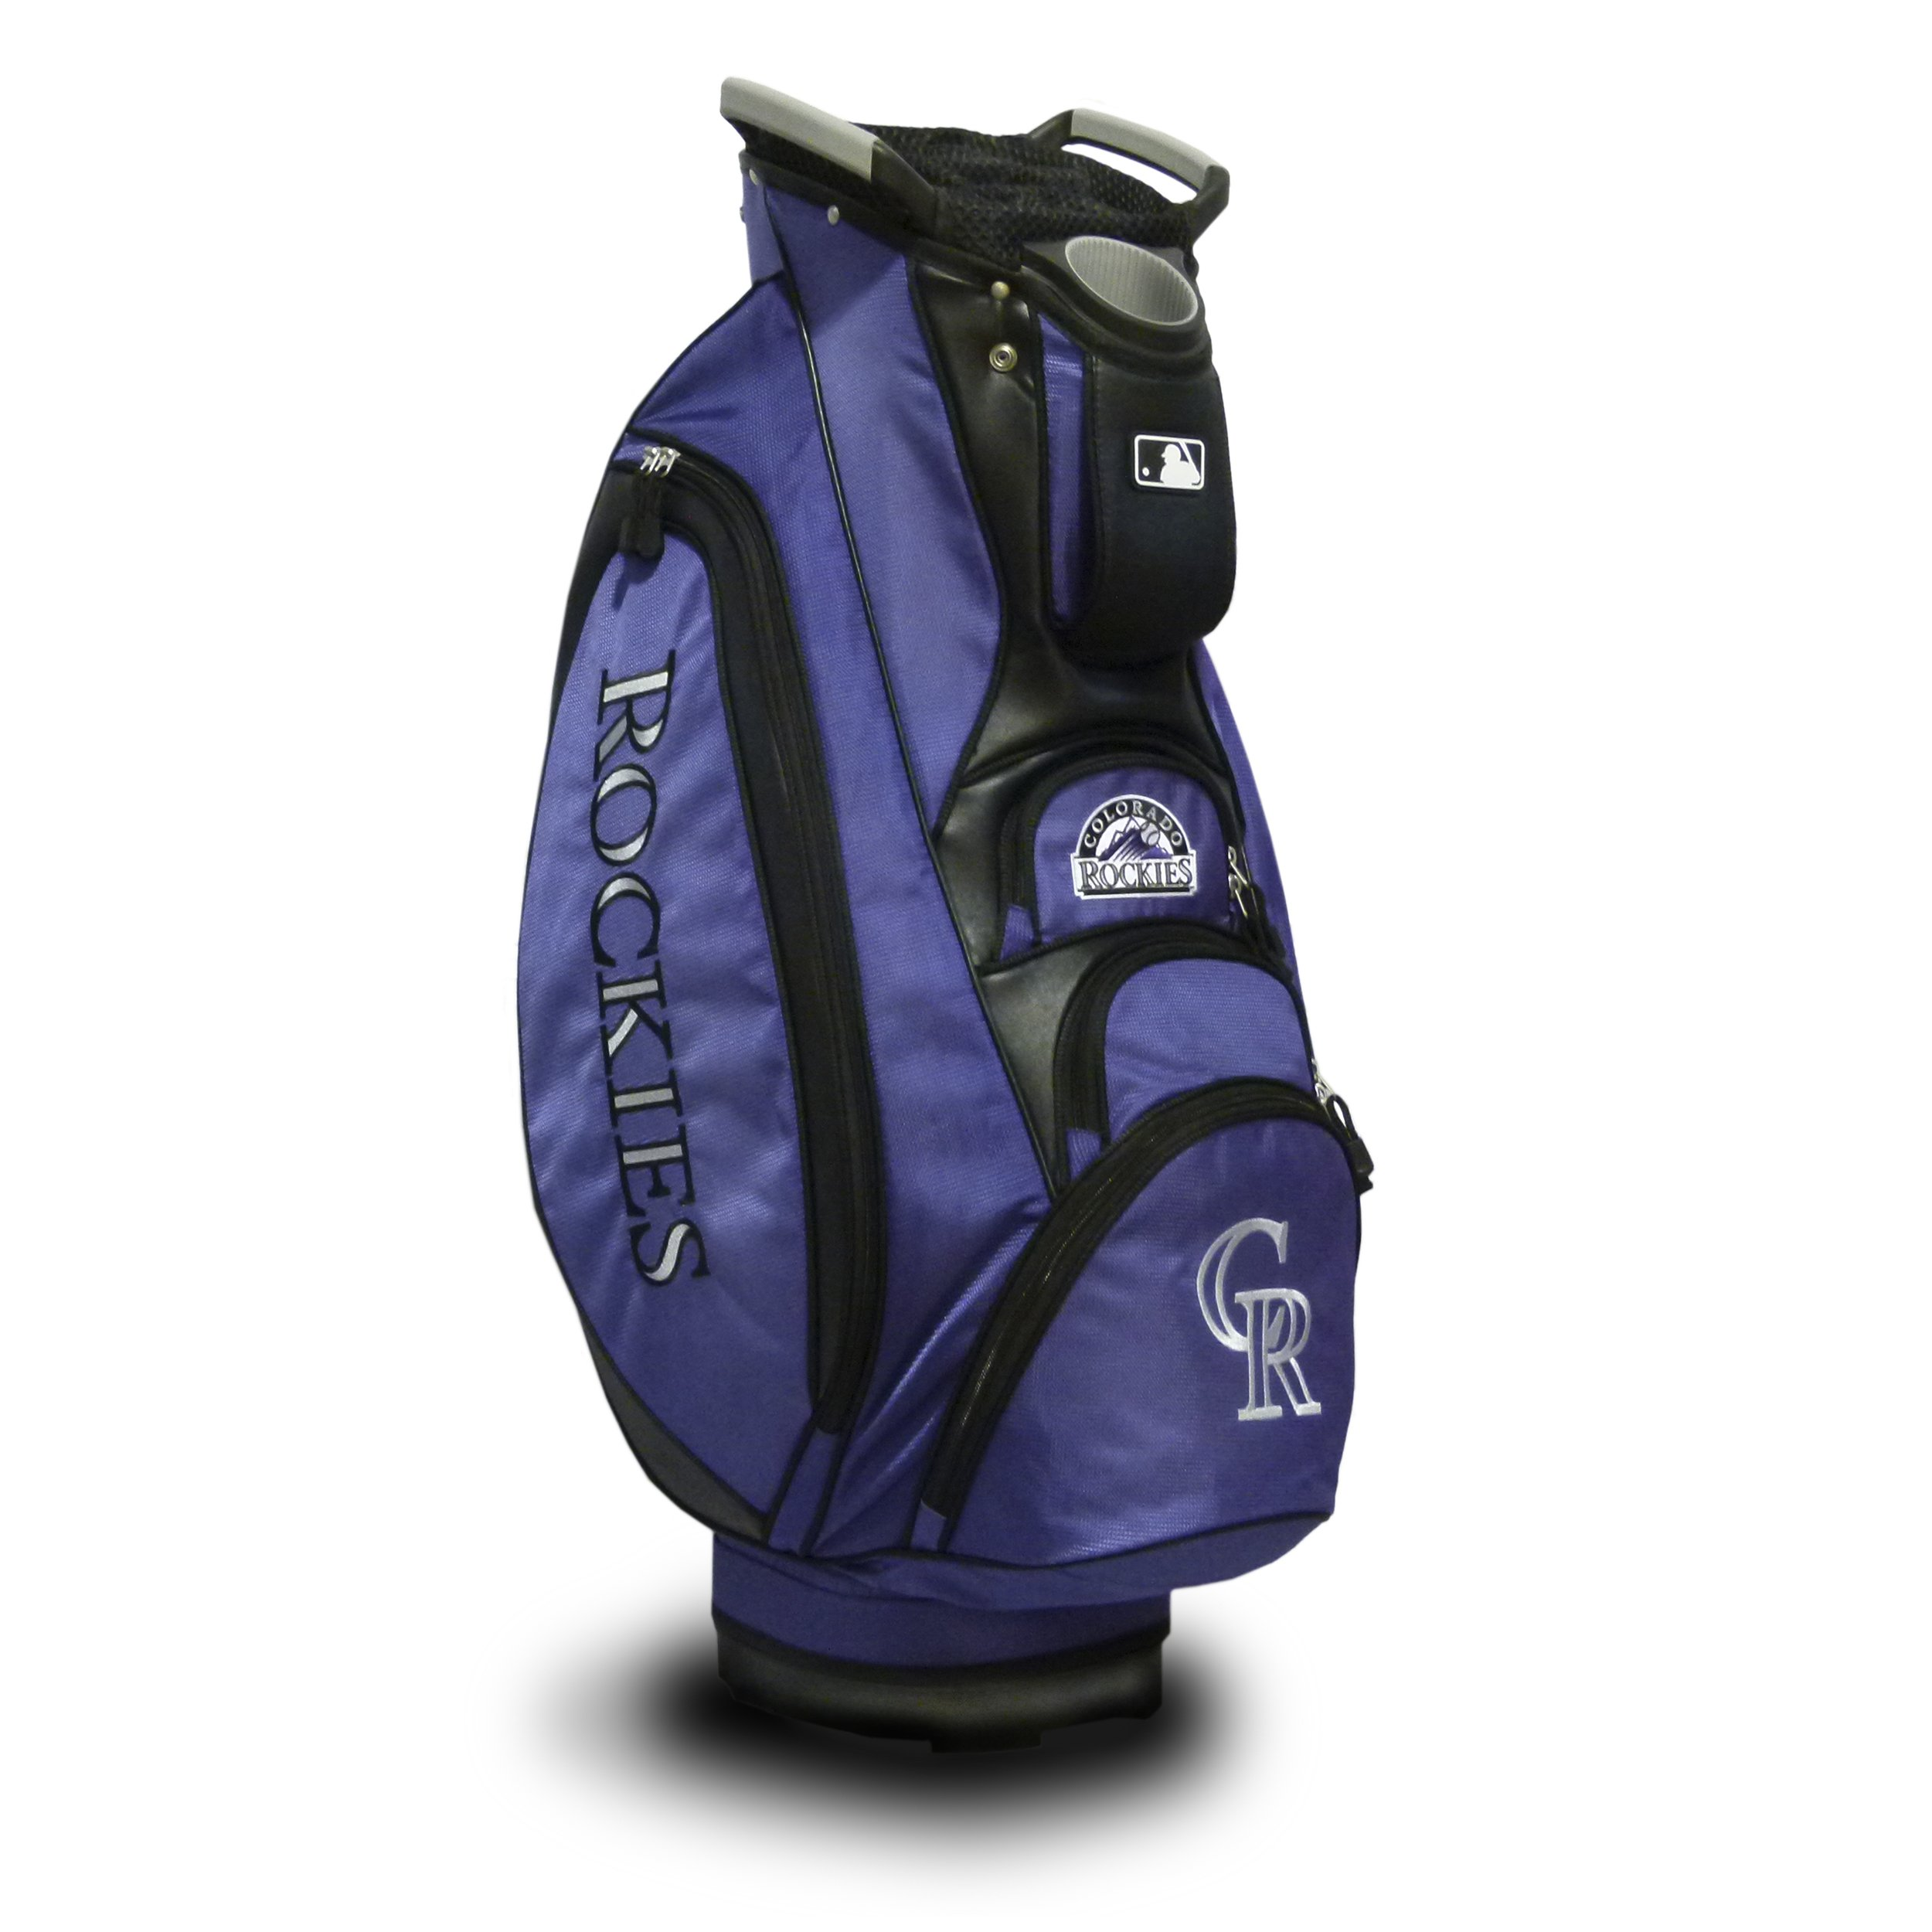 Team Golf MLB Colorado Rockies Victory Golf Cart Bag, 10-way Top with Integrated Dual Handle & External Putter Well, Cooler Pocket, Padded Strap, Umbrella Holder & Removable Rain Hood